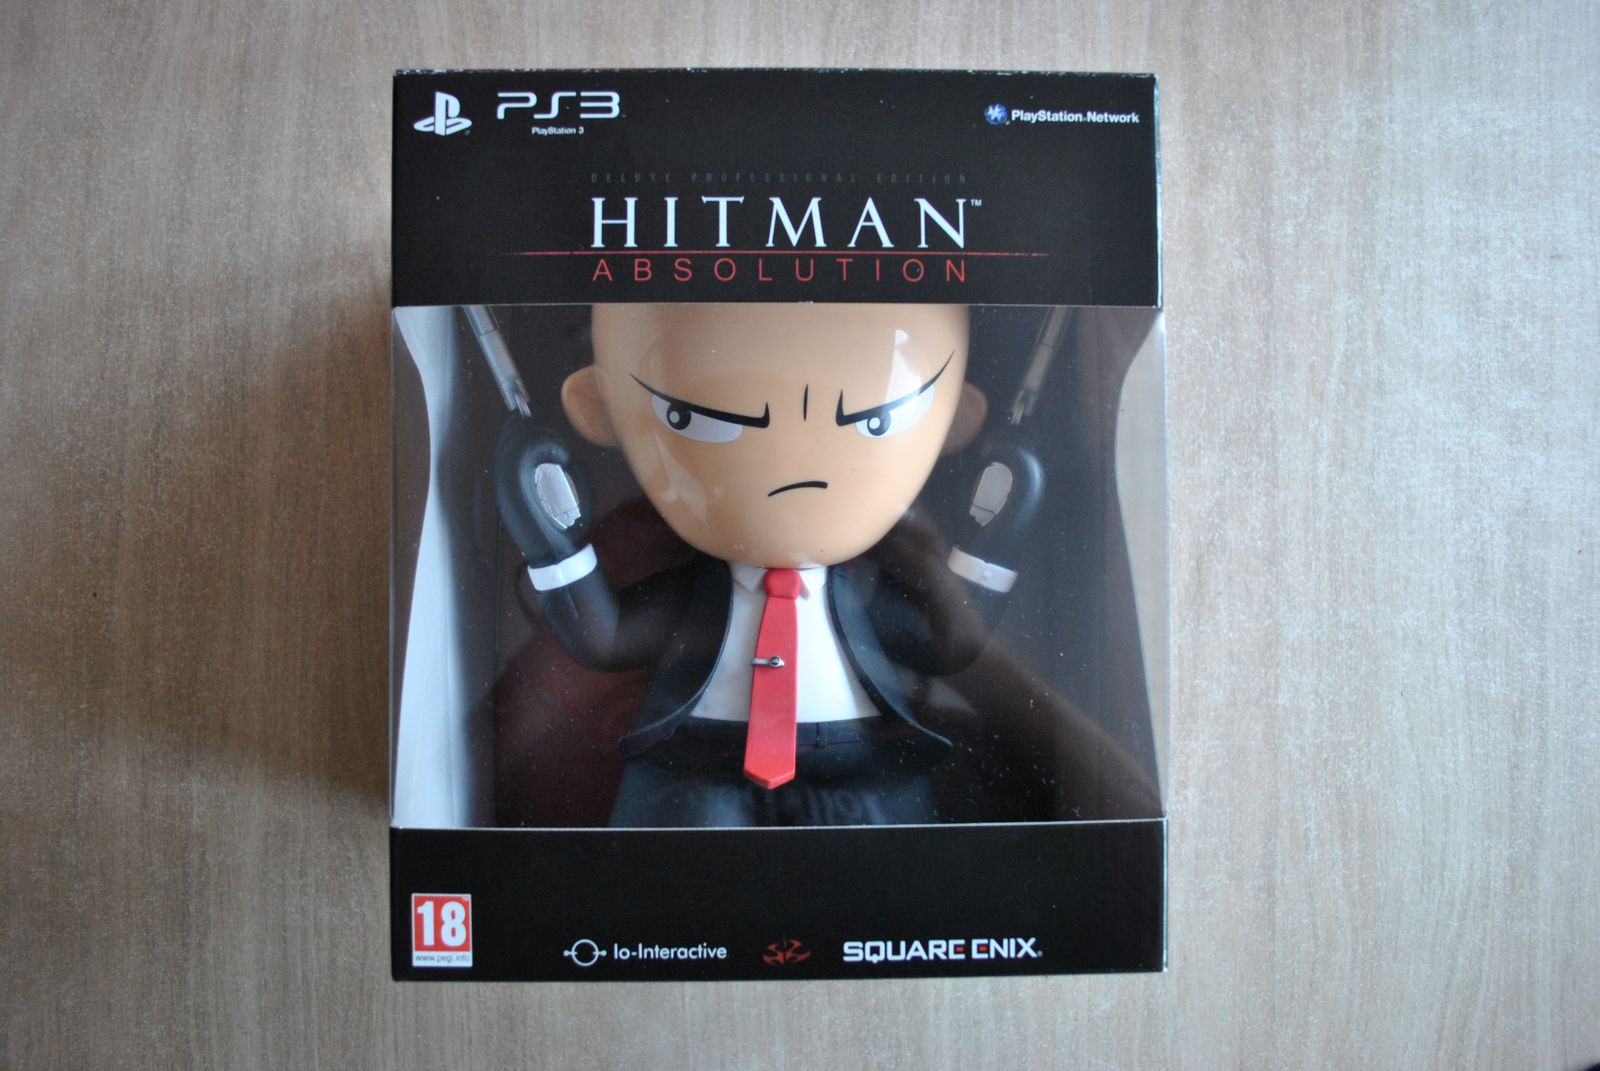 [ARRIVAGE] Hitman Absolution deluxe professional édition